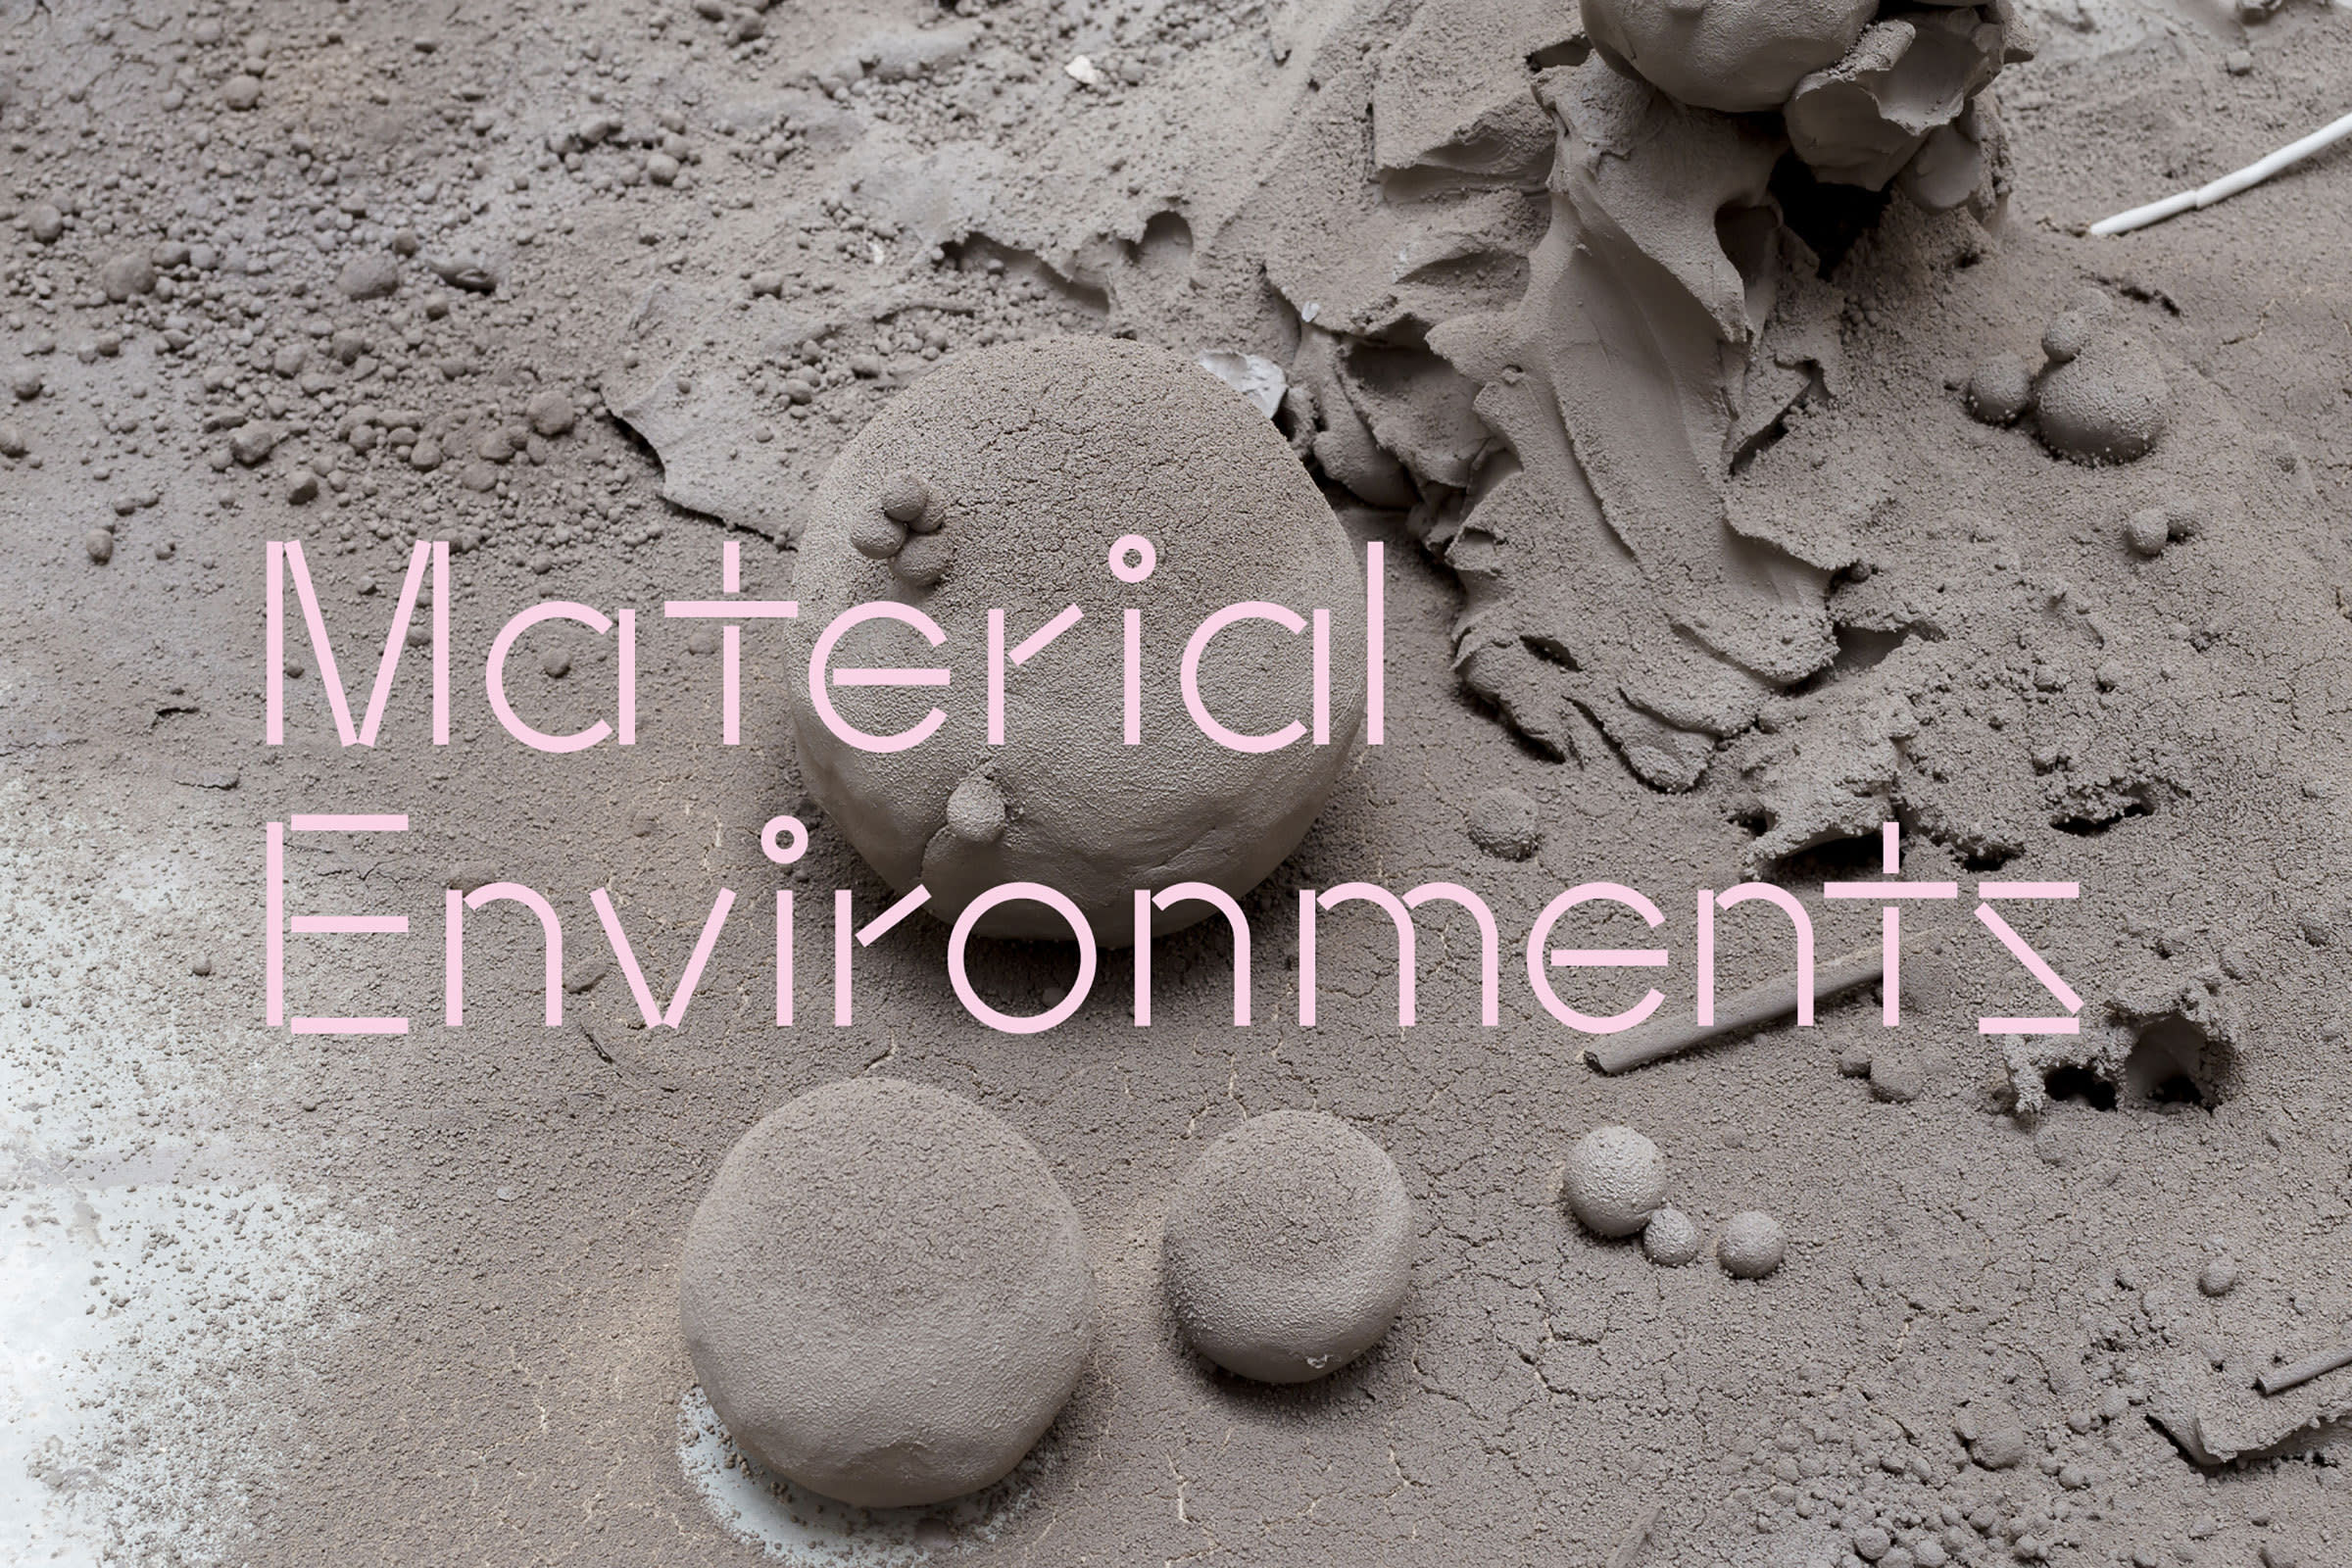 saul studio — Material Environments